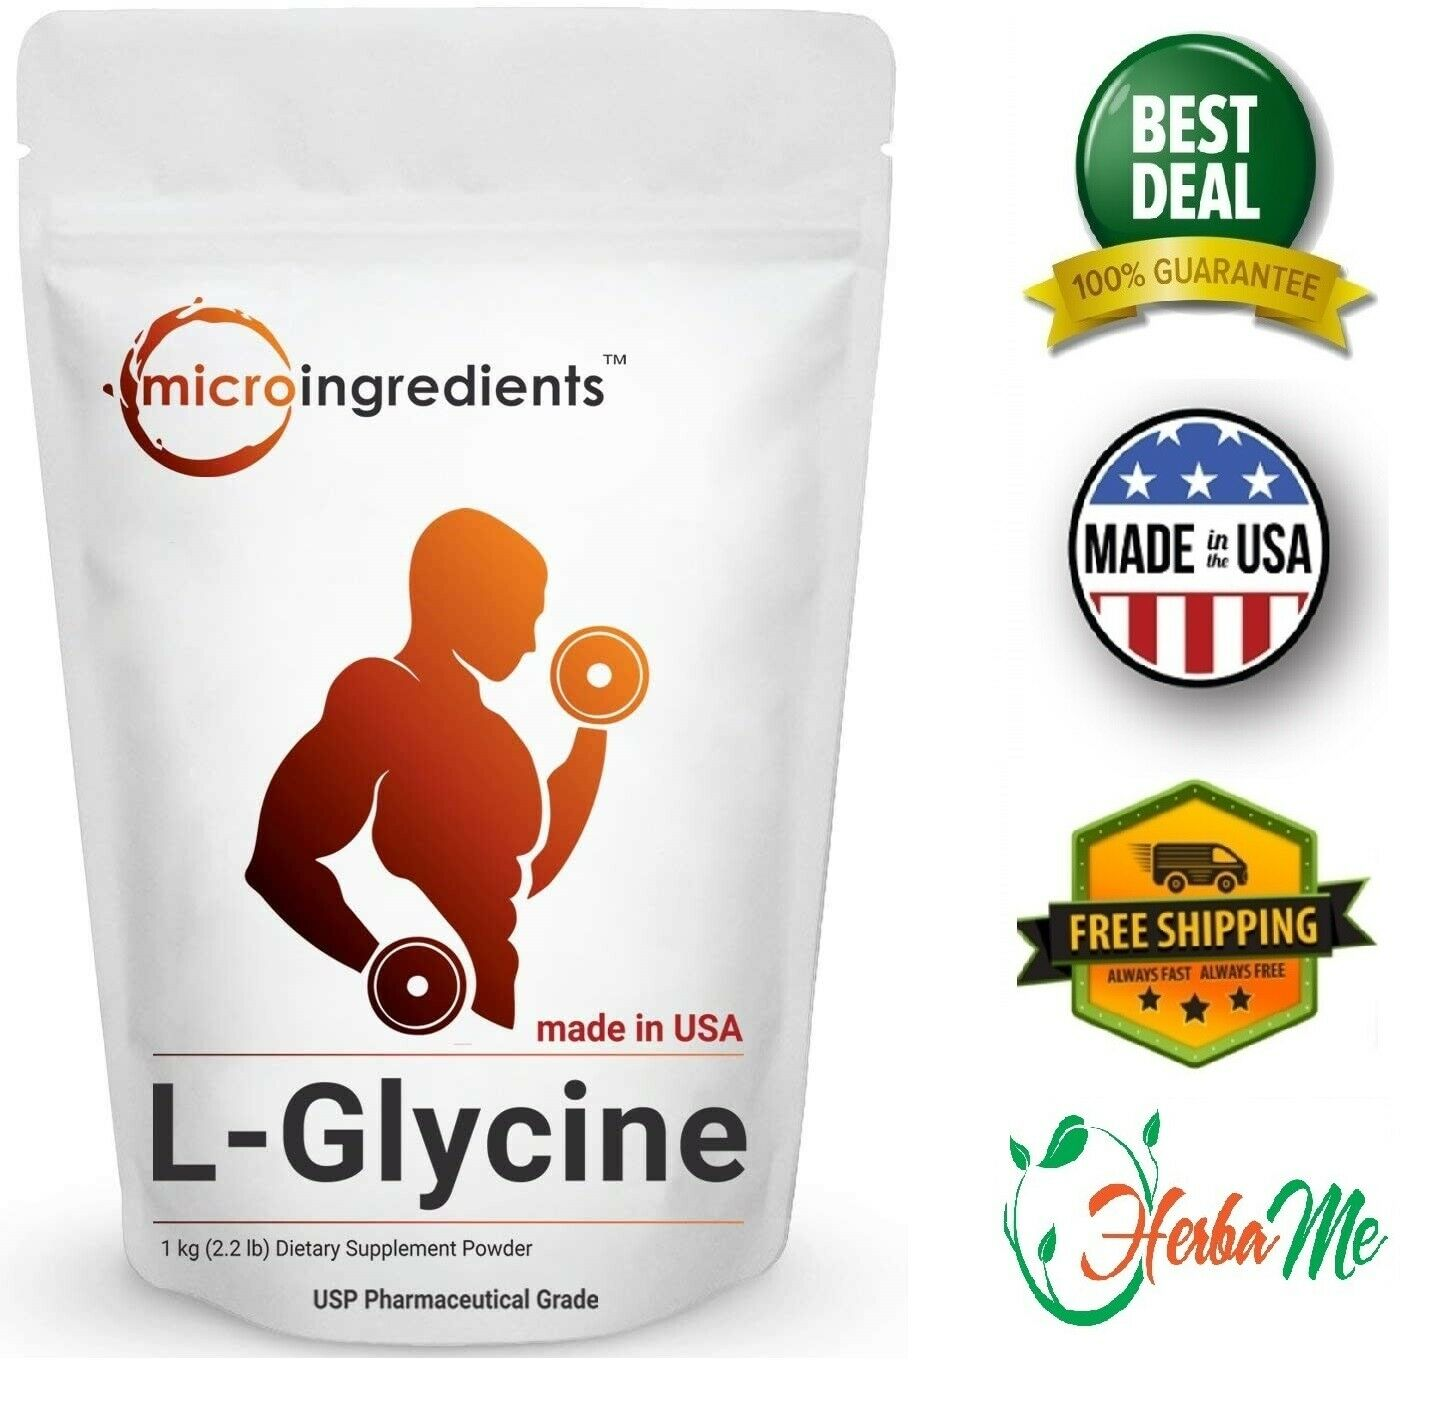 L-GLYCINE POWDER 2.2 lbs Supports Muscle Energy Stamina Endurance and Strength